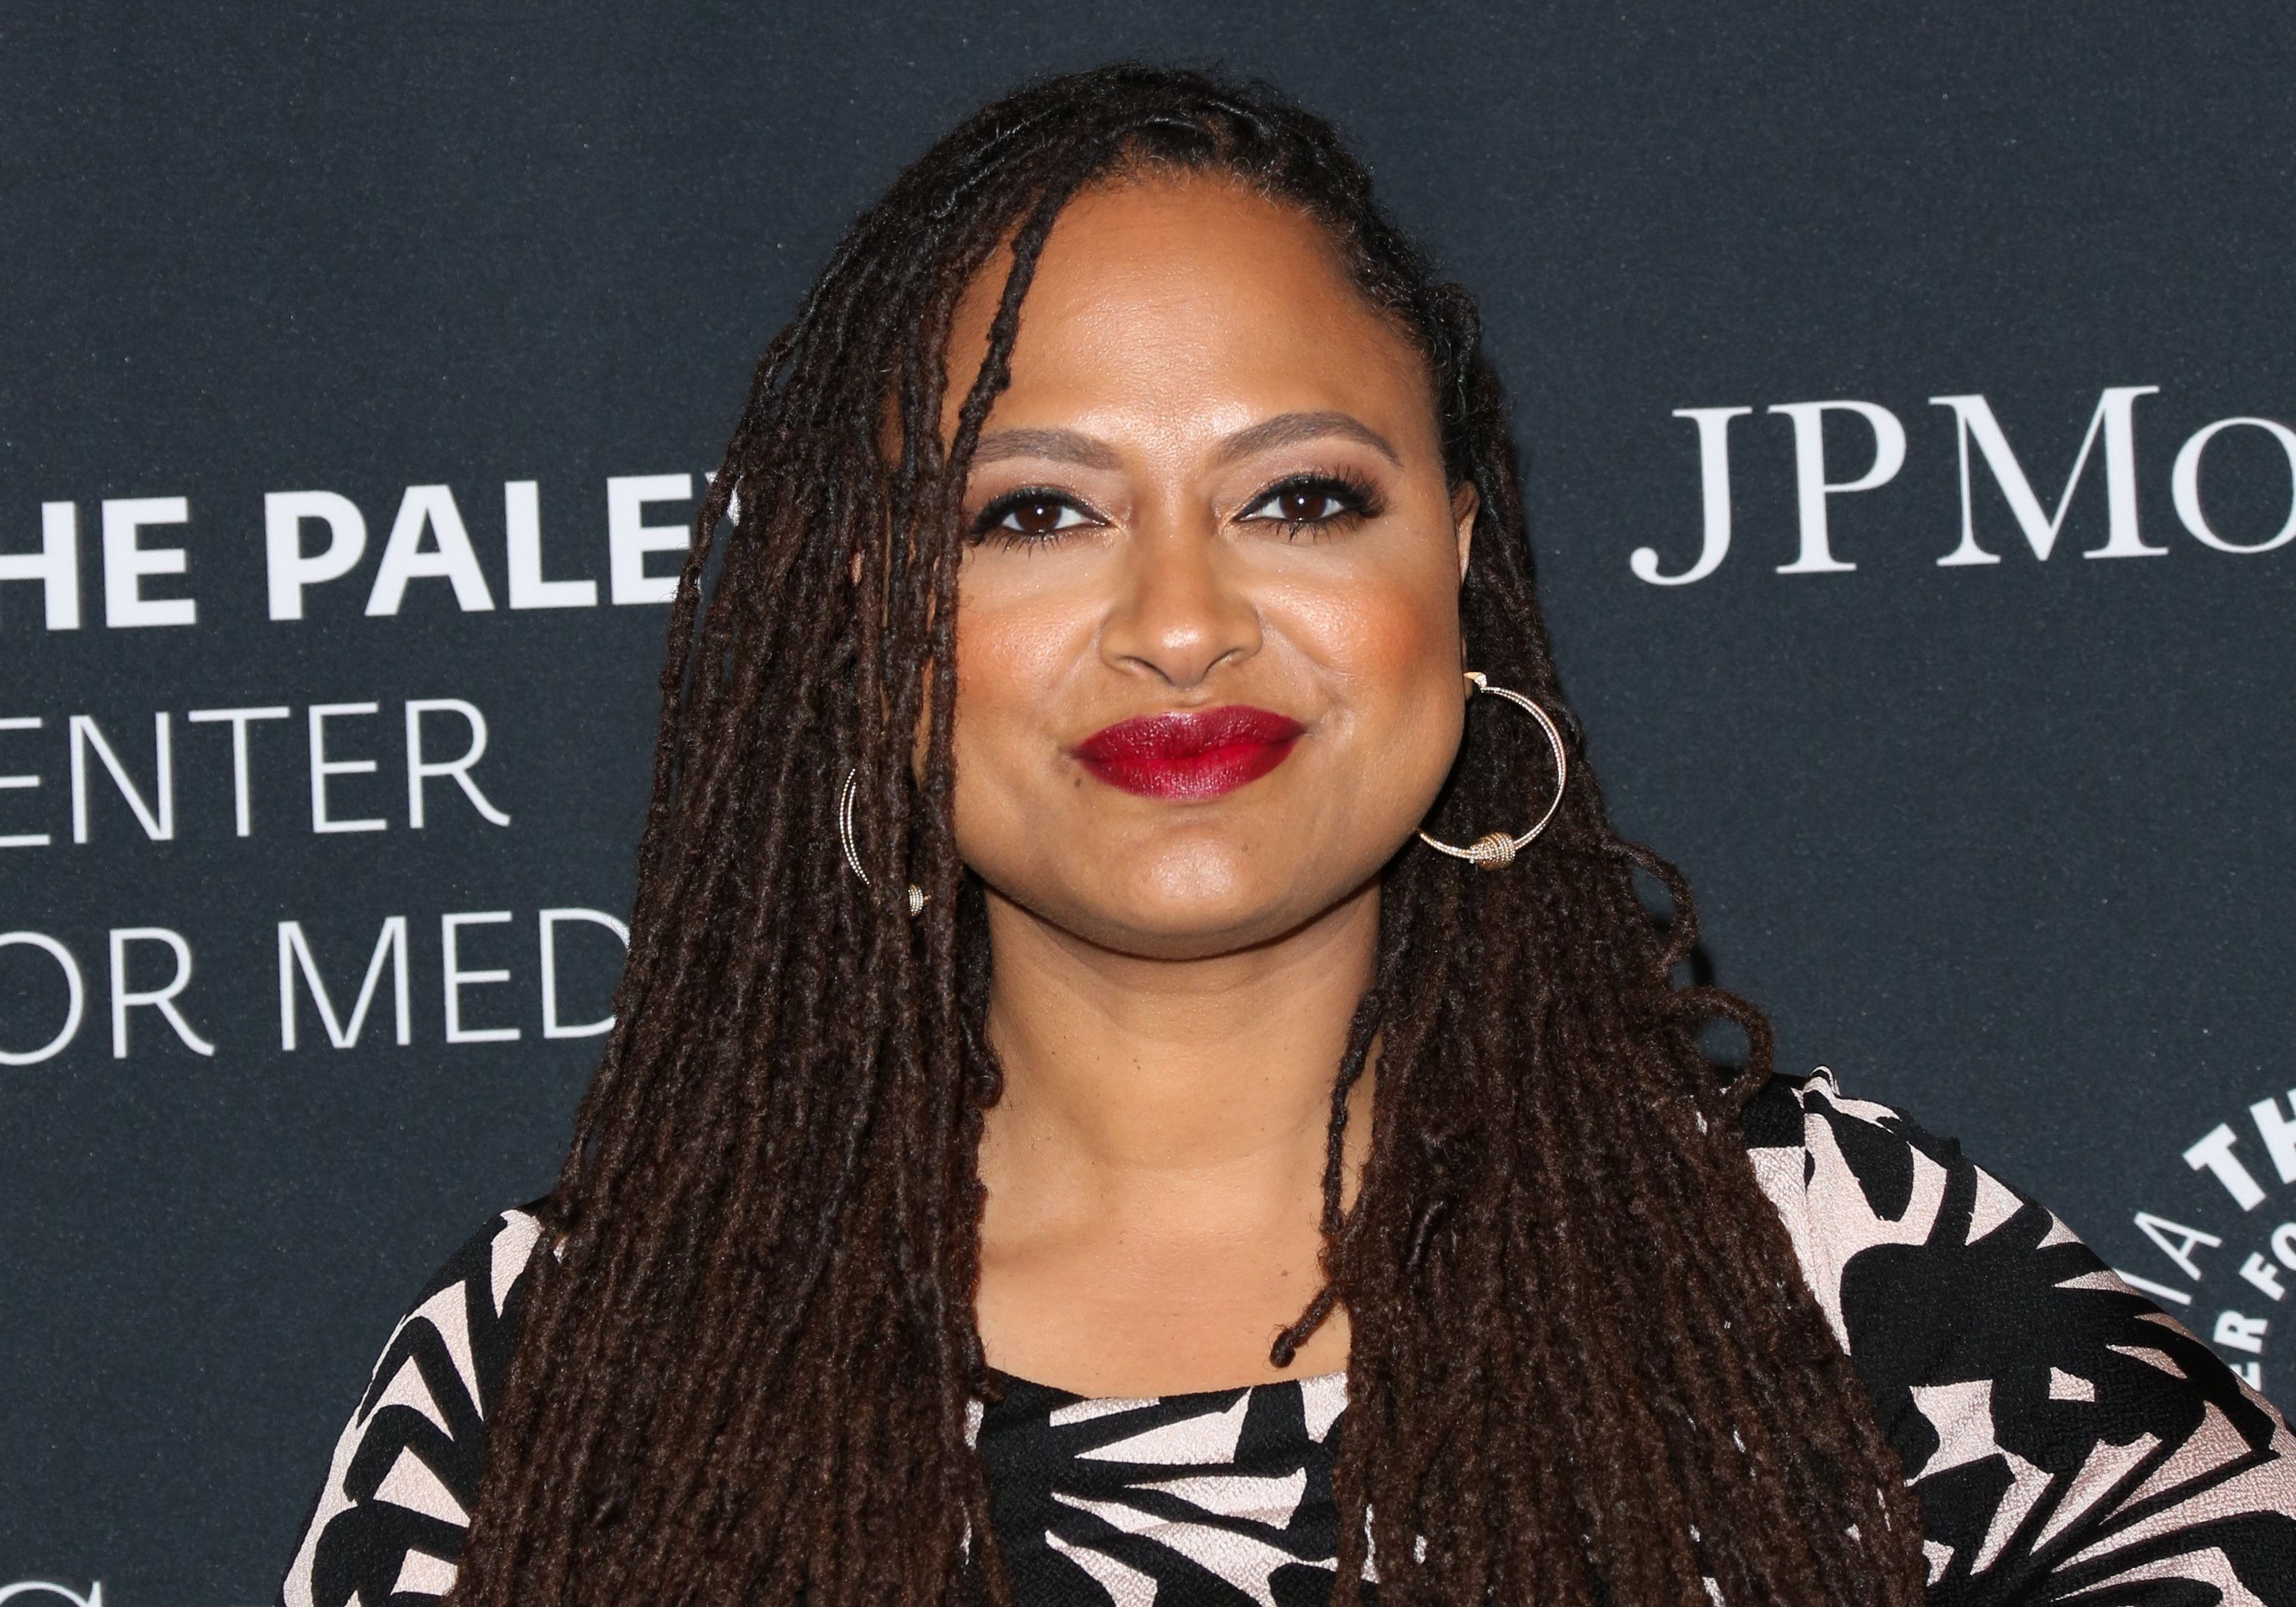 BEVERLY HILLS, CA - OCTOBER 26:  Director Ava DuVernay attends the Paley Center For Media's Tribute To African-American Achievements In Television at the Beverly Wilshire Four Seasons Hotel on October 26, 2015 in Beverly Hills, California.  (Photo by Paul Archuleta/FilmMagic)